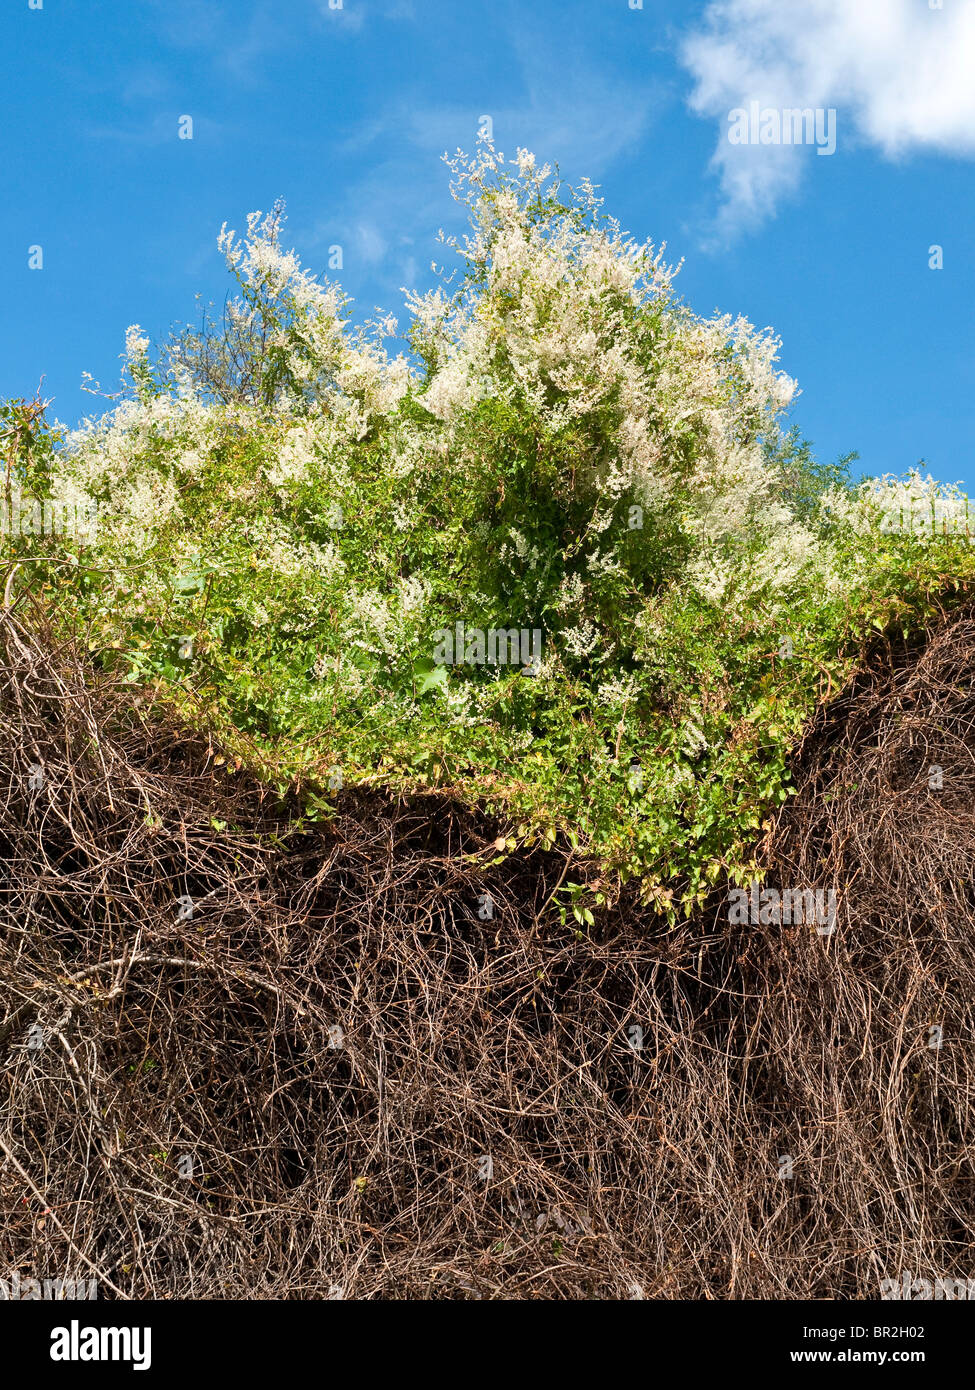 Russian vine / Fallopia baldschuanica climbing over top of dead hedgerow - France. - Stock Image